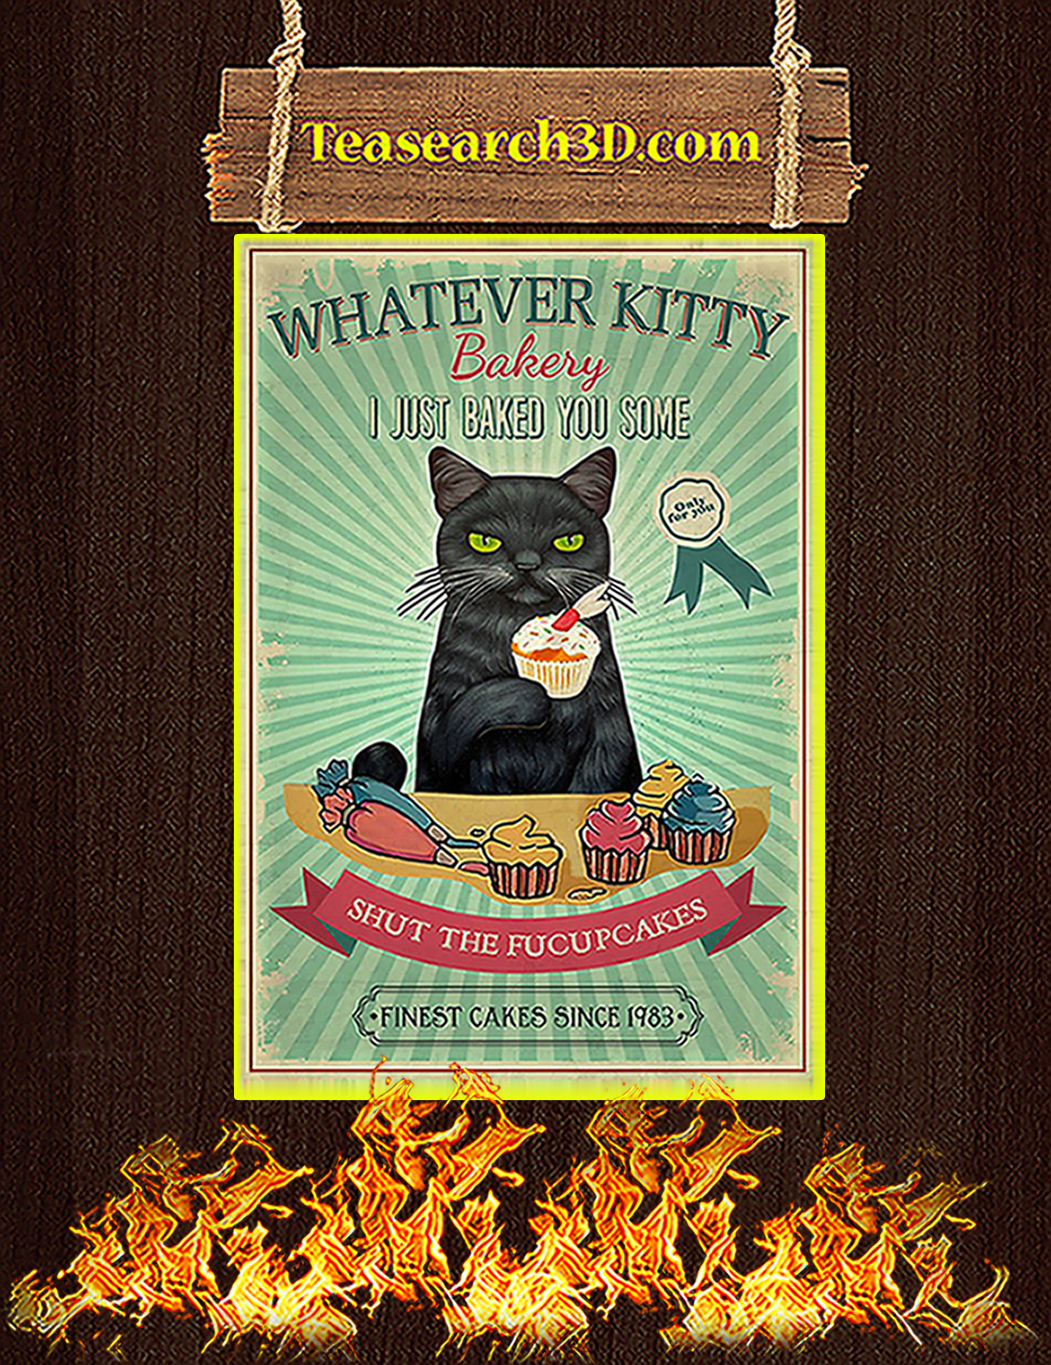 Whatever kitty bakery I just baked you some poster A1